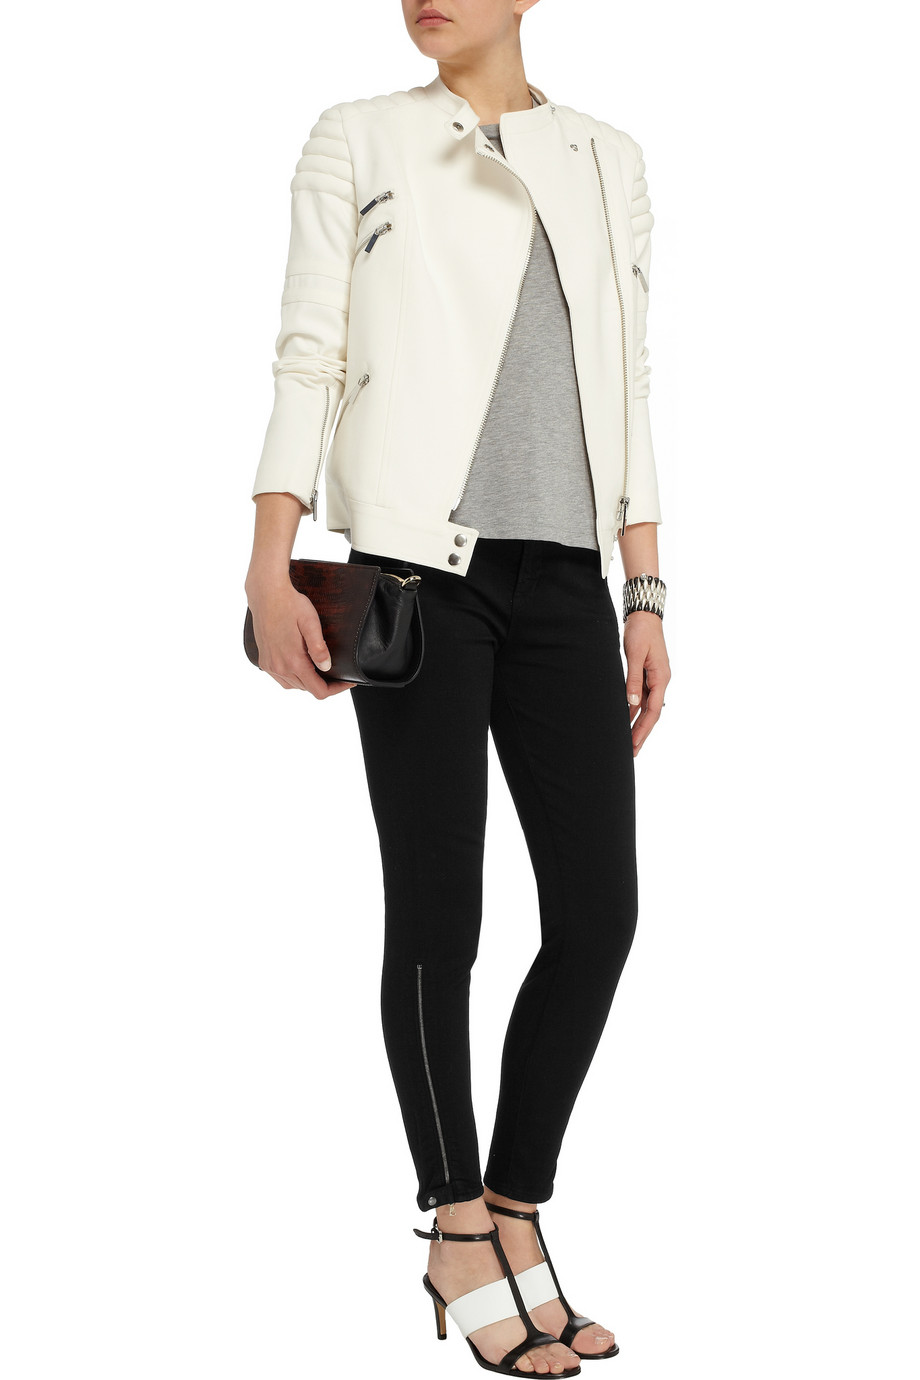 Rise skinny jeans – 55% at the outnet.com